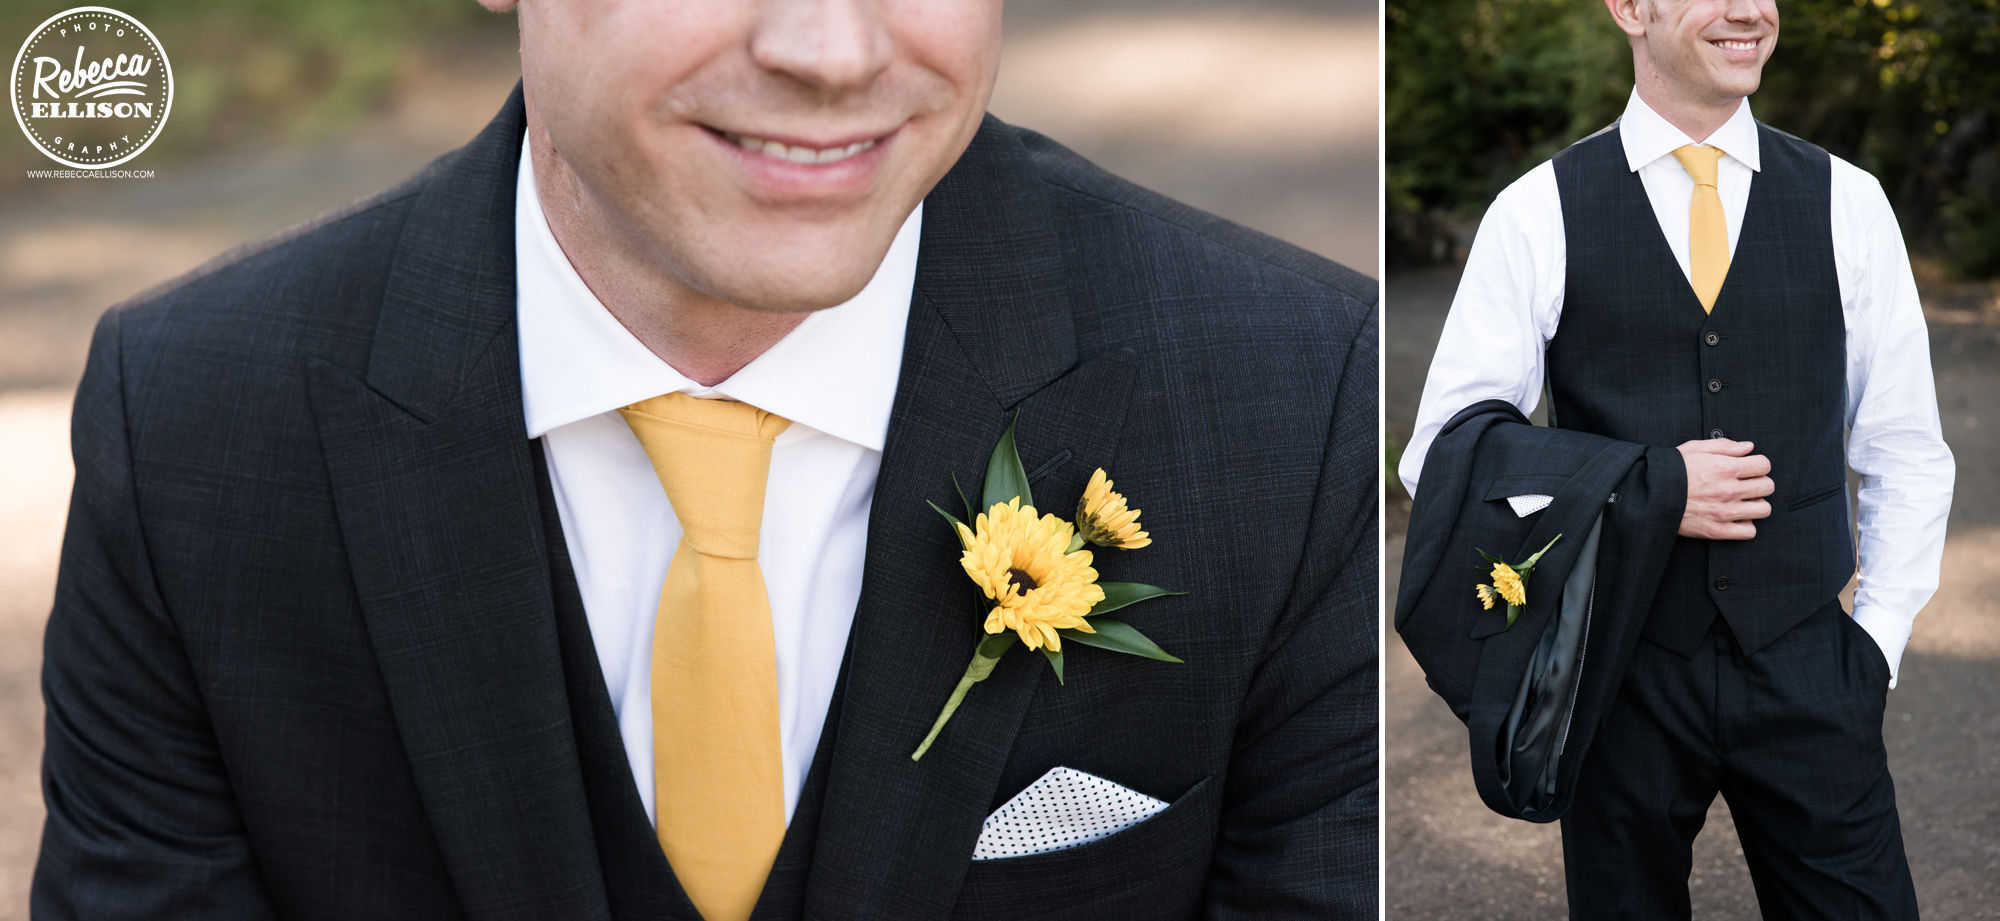 Groom details featuring yellow boutonniere and tie and a polka dot pocket square photographed by Rebecca Ellison Photography